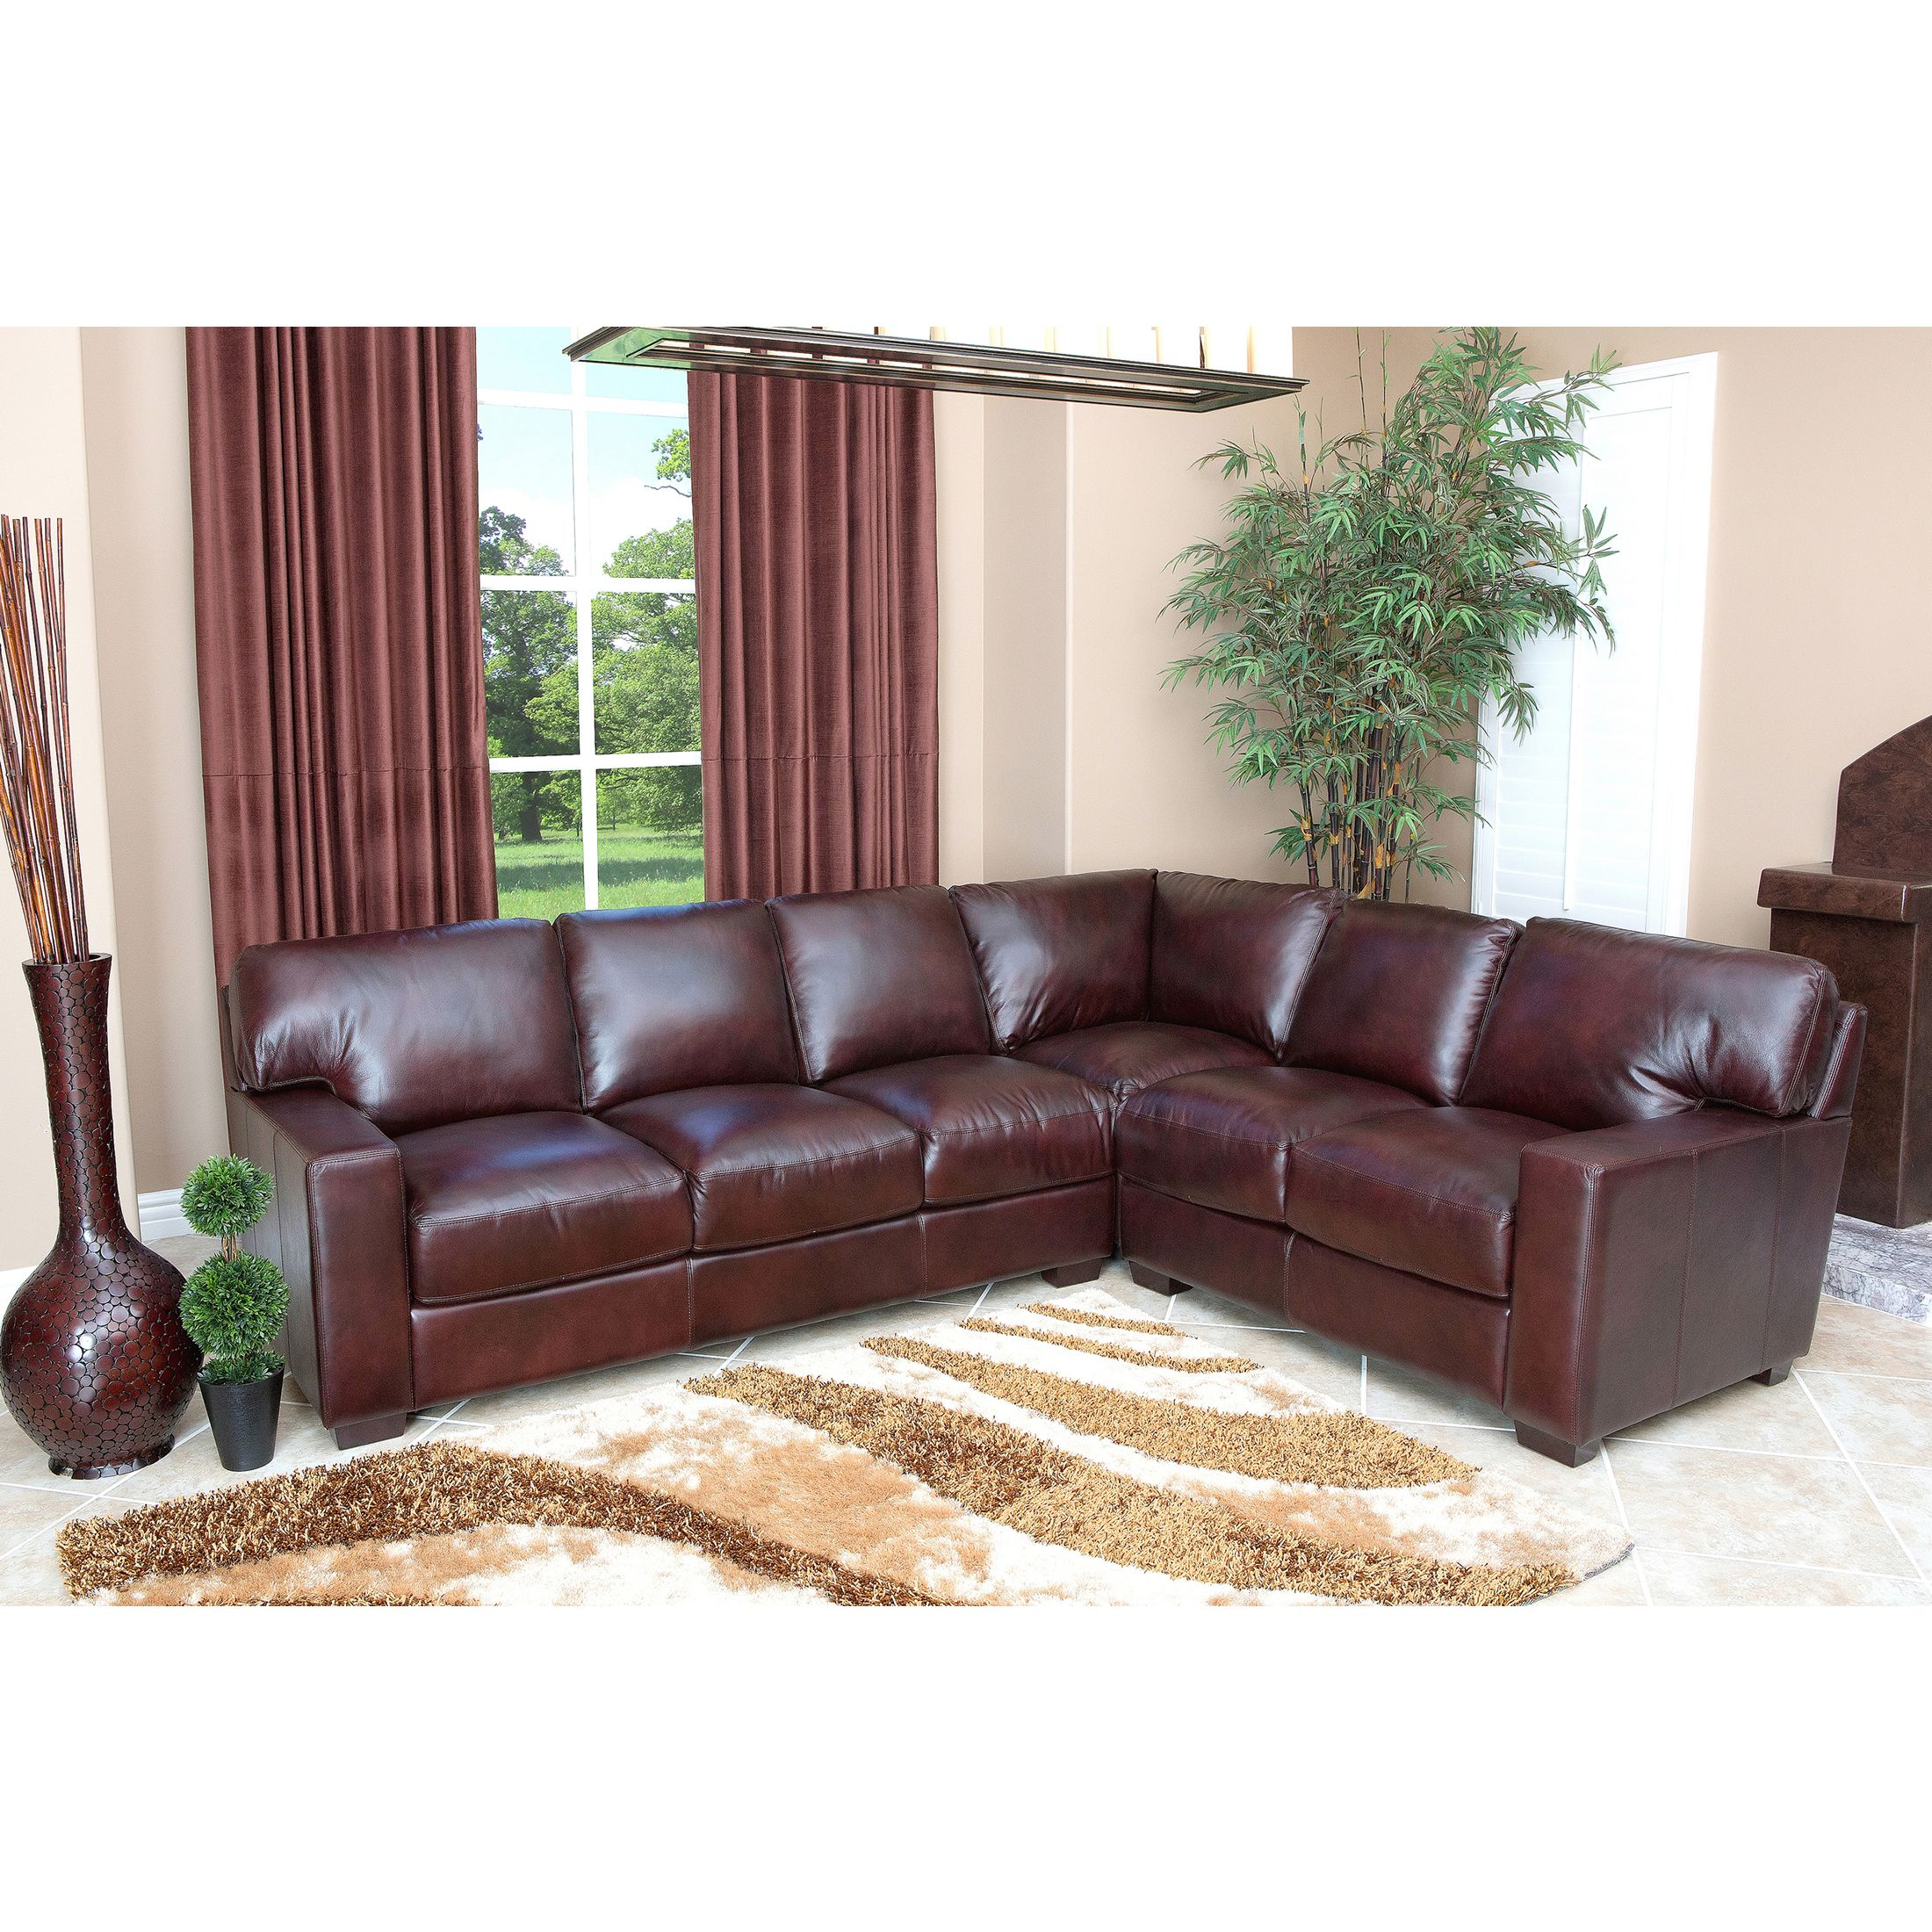 This Is A Hand Rubbed Leather Sectional Sofa By Abbyson Living. Crafted Of  Durable, High Grade Italian Leather That Is Both Soft And Supple, This  Collection ...